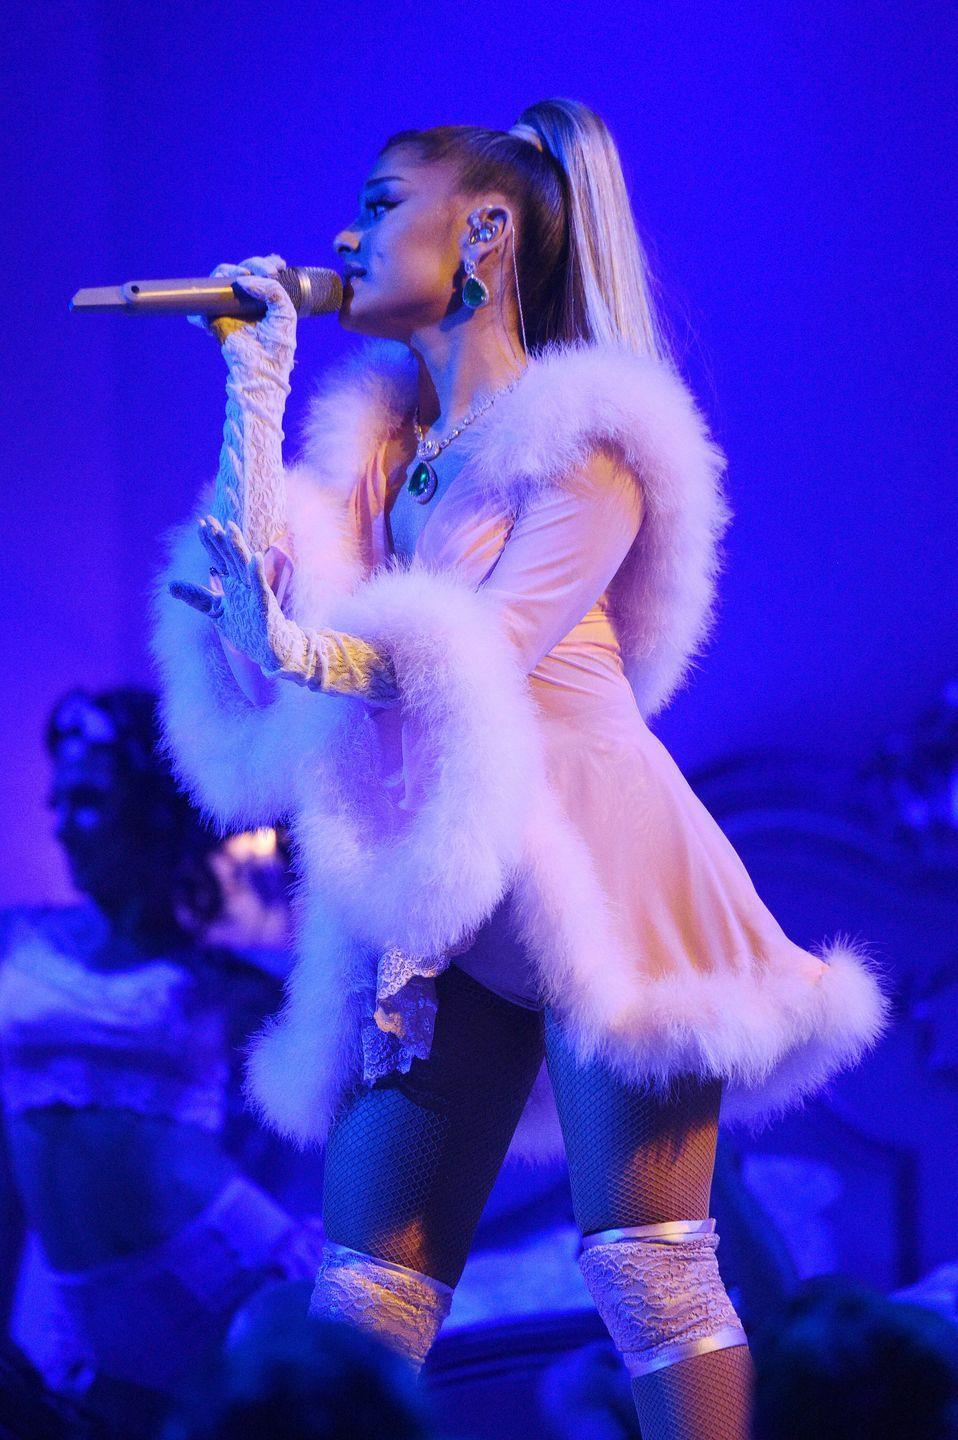 """<p>Within the first verse, this song <a href=""""https://www.elle.com/culture/music/a24612525/ariana-grande-thank-u-next-lyrics-song-audio-pete-davidson-reference/"""" rel=""""nofollow noopener"""" target=""""_blank"""" data-ylk=""""slk:name-drops several of Ariana Grande's ex-boyfriends"""" class=""""link rapid-noclick-resp"""">name-drops several of Ariana Grande's ex-boyfriends</a>, including Pete Davidson, Mac Miller, Ricky Alvarez, and Big Sean. So, obviously, the song is about past relationships, but also about """"gratitude, growth, embracing our path bumps n all,"""" <a href=""""https://twitter.com/ArianaGrande/status/1058722175207727104"""" rel=""""nofollow noopener"""" target=""""_blank"""" data-ylk=""""slk:according to the singer"""" class=""""link rapid-noclick-resp"""">according to the singer</a>.</p>"""